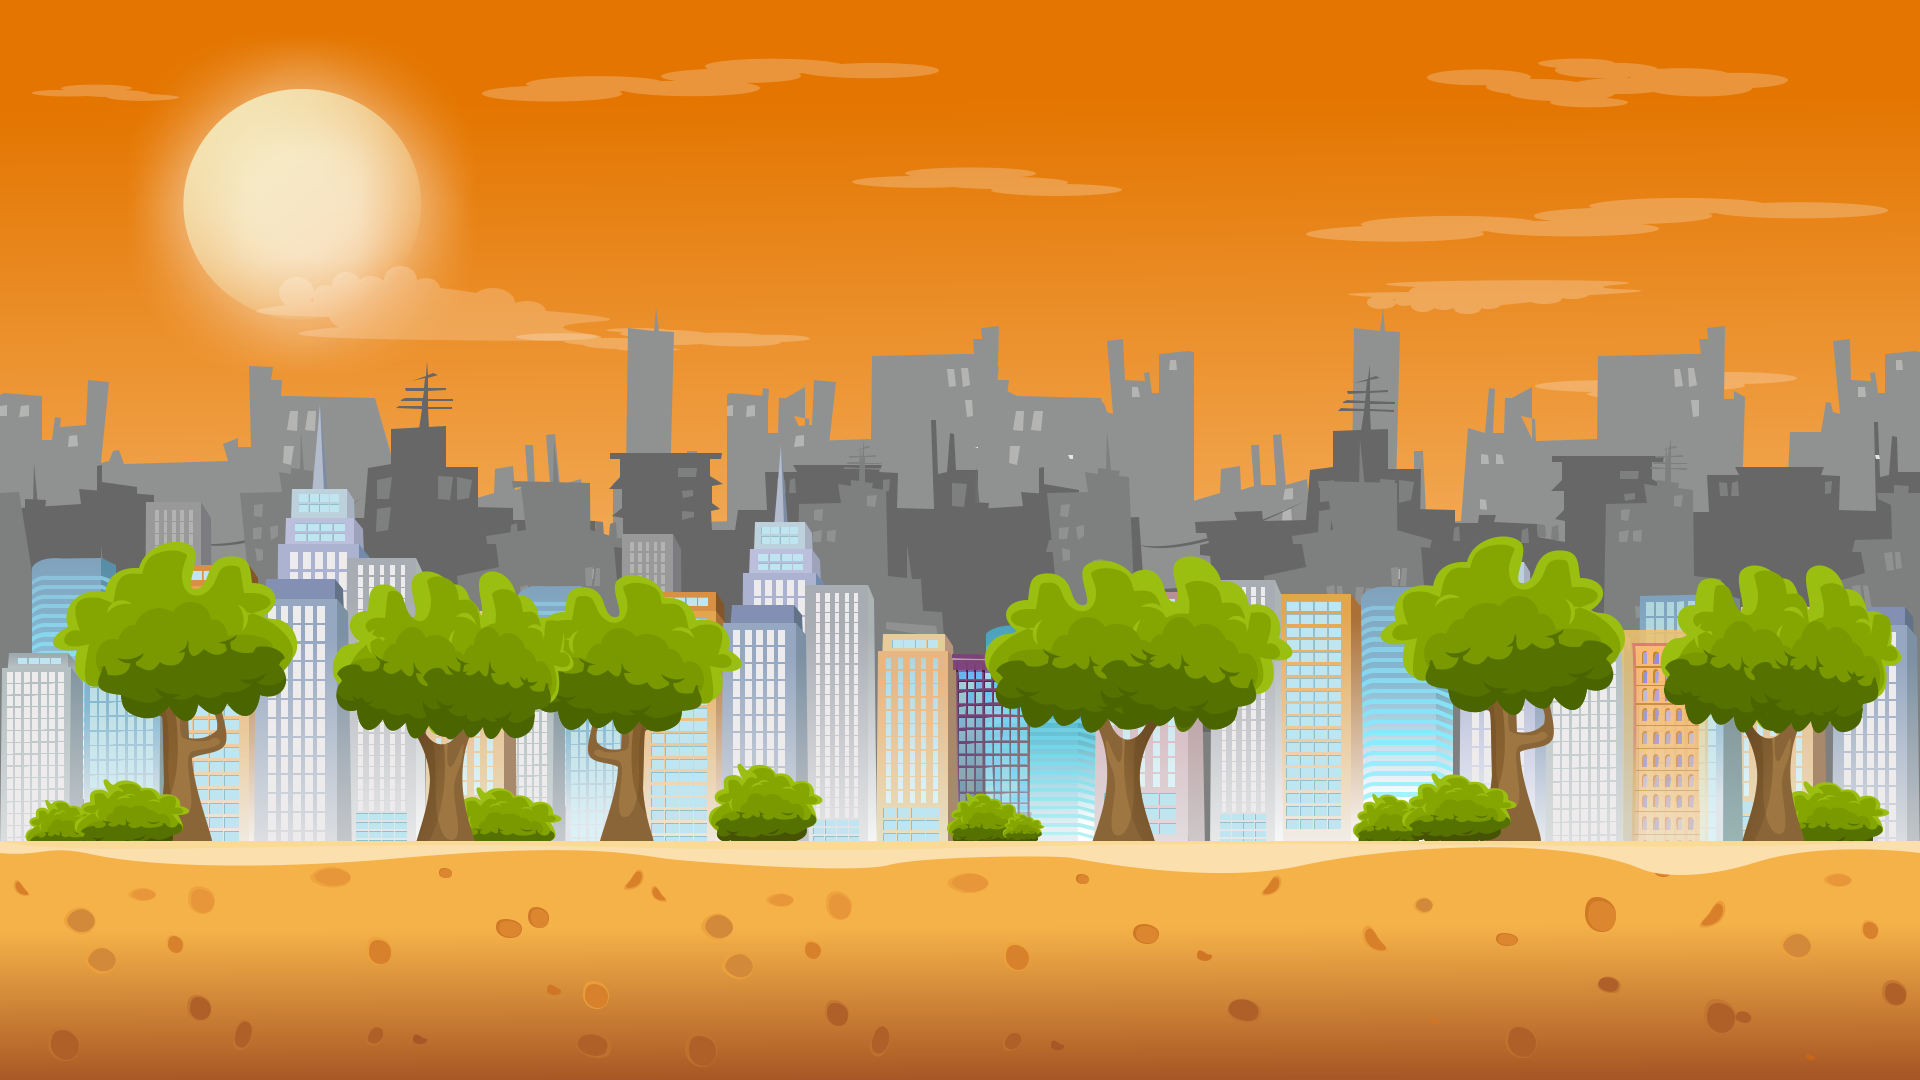 3 parallax backgrounds | opengameart